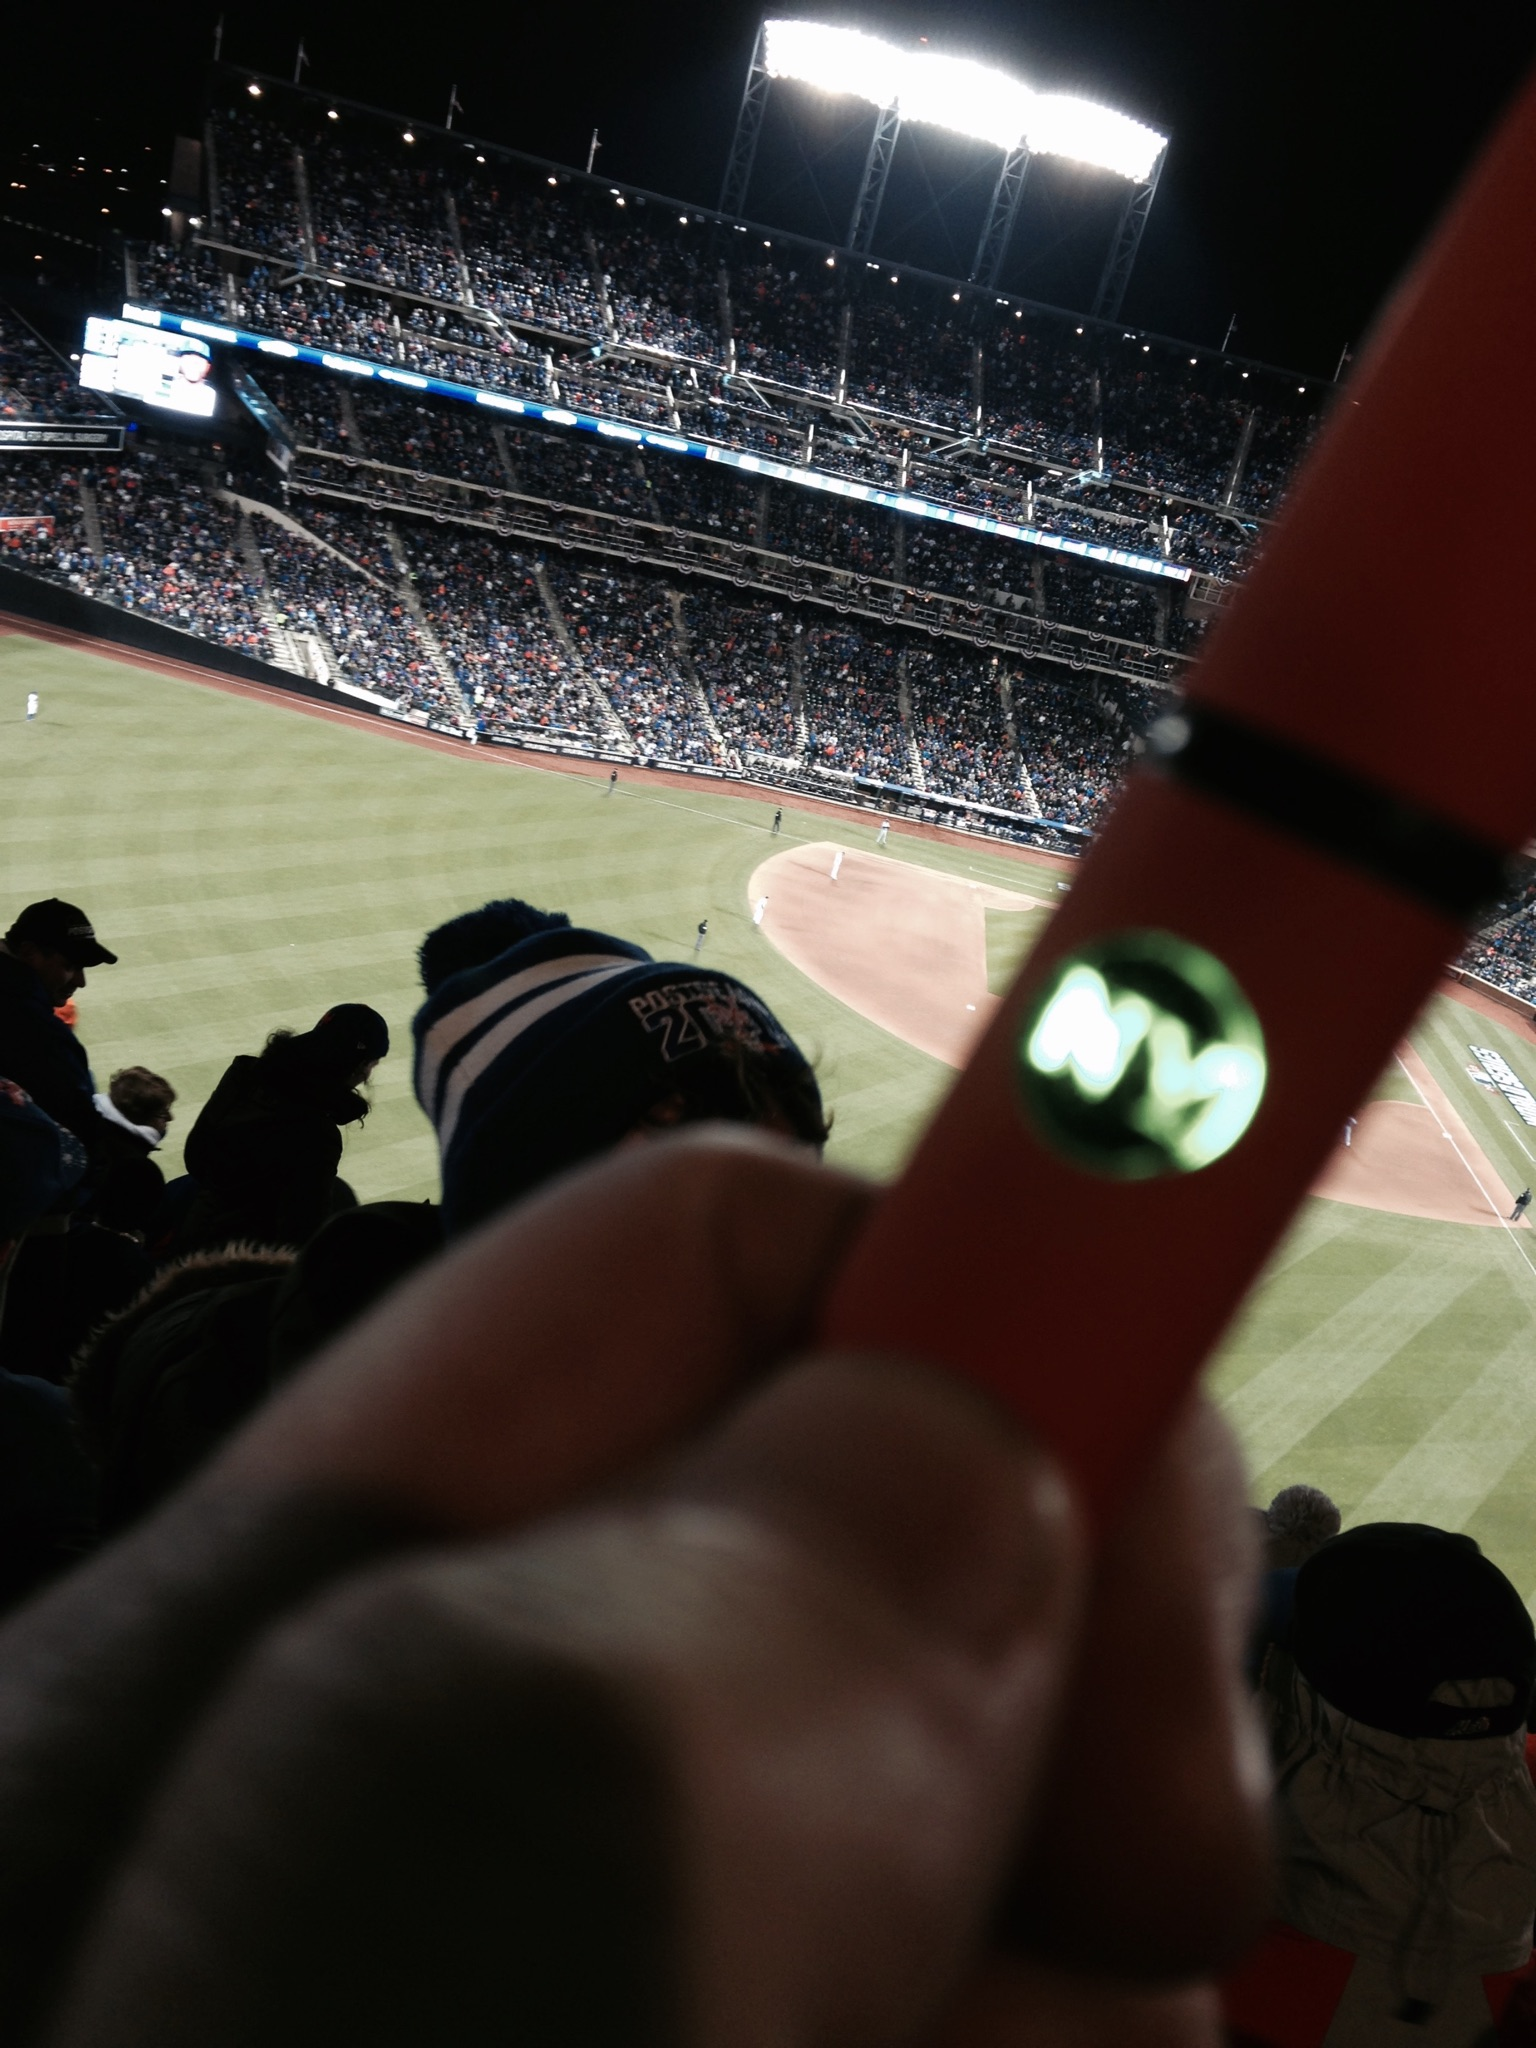 vaping at a baseball game